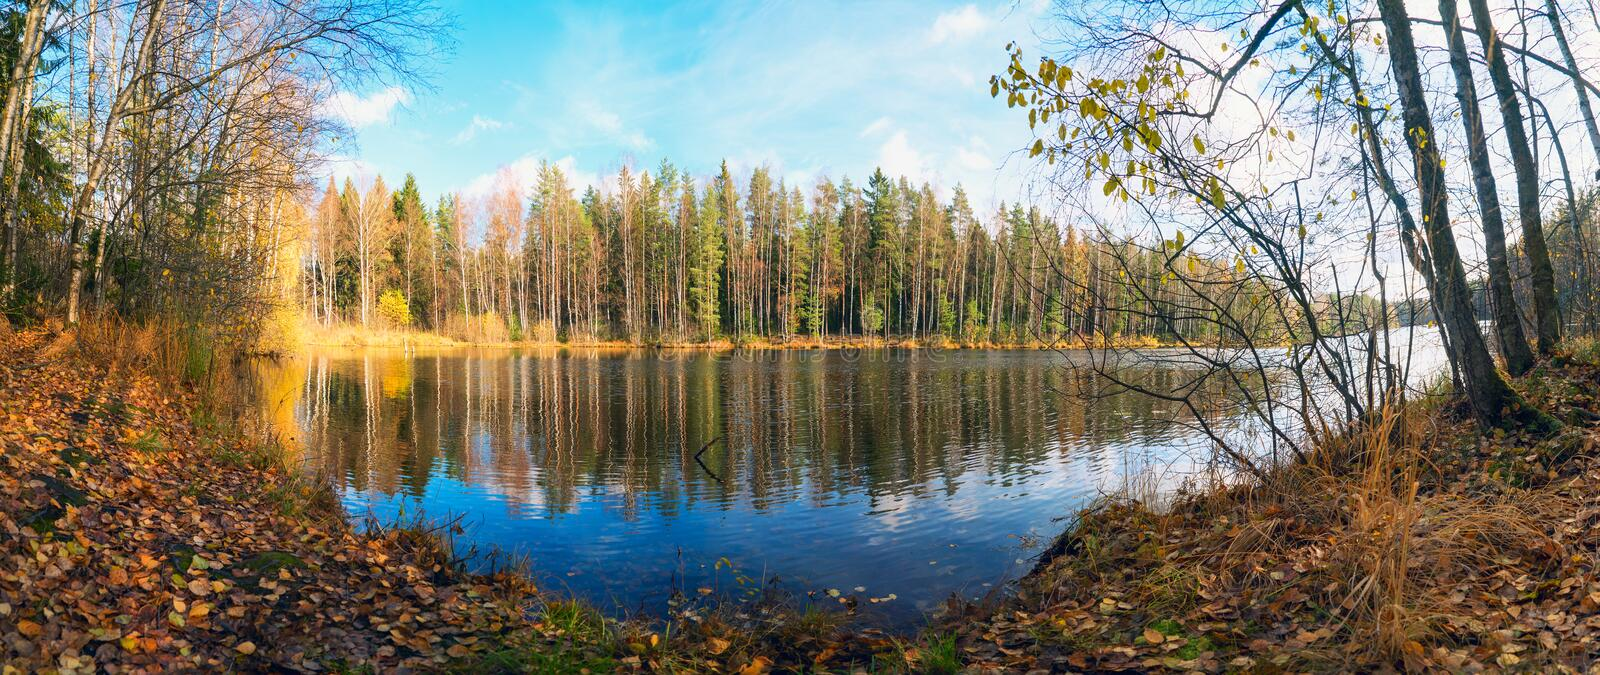 Panorama of the autumn coast with reflection in the water of a forest lake. Autumn landscape royalty free stock photo